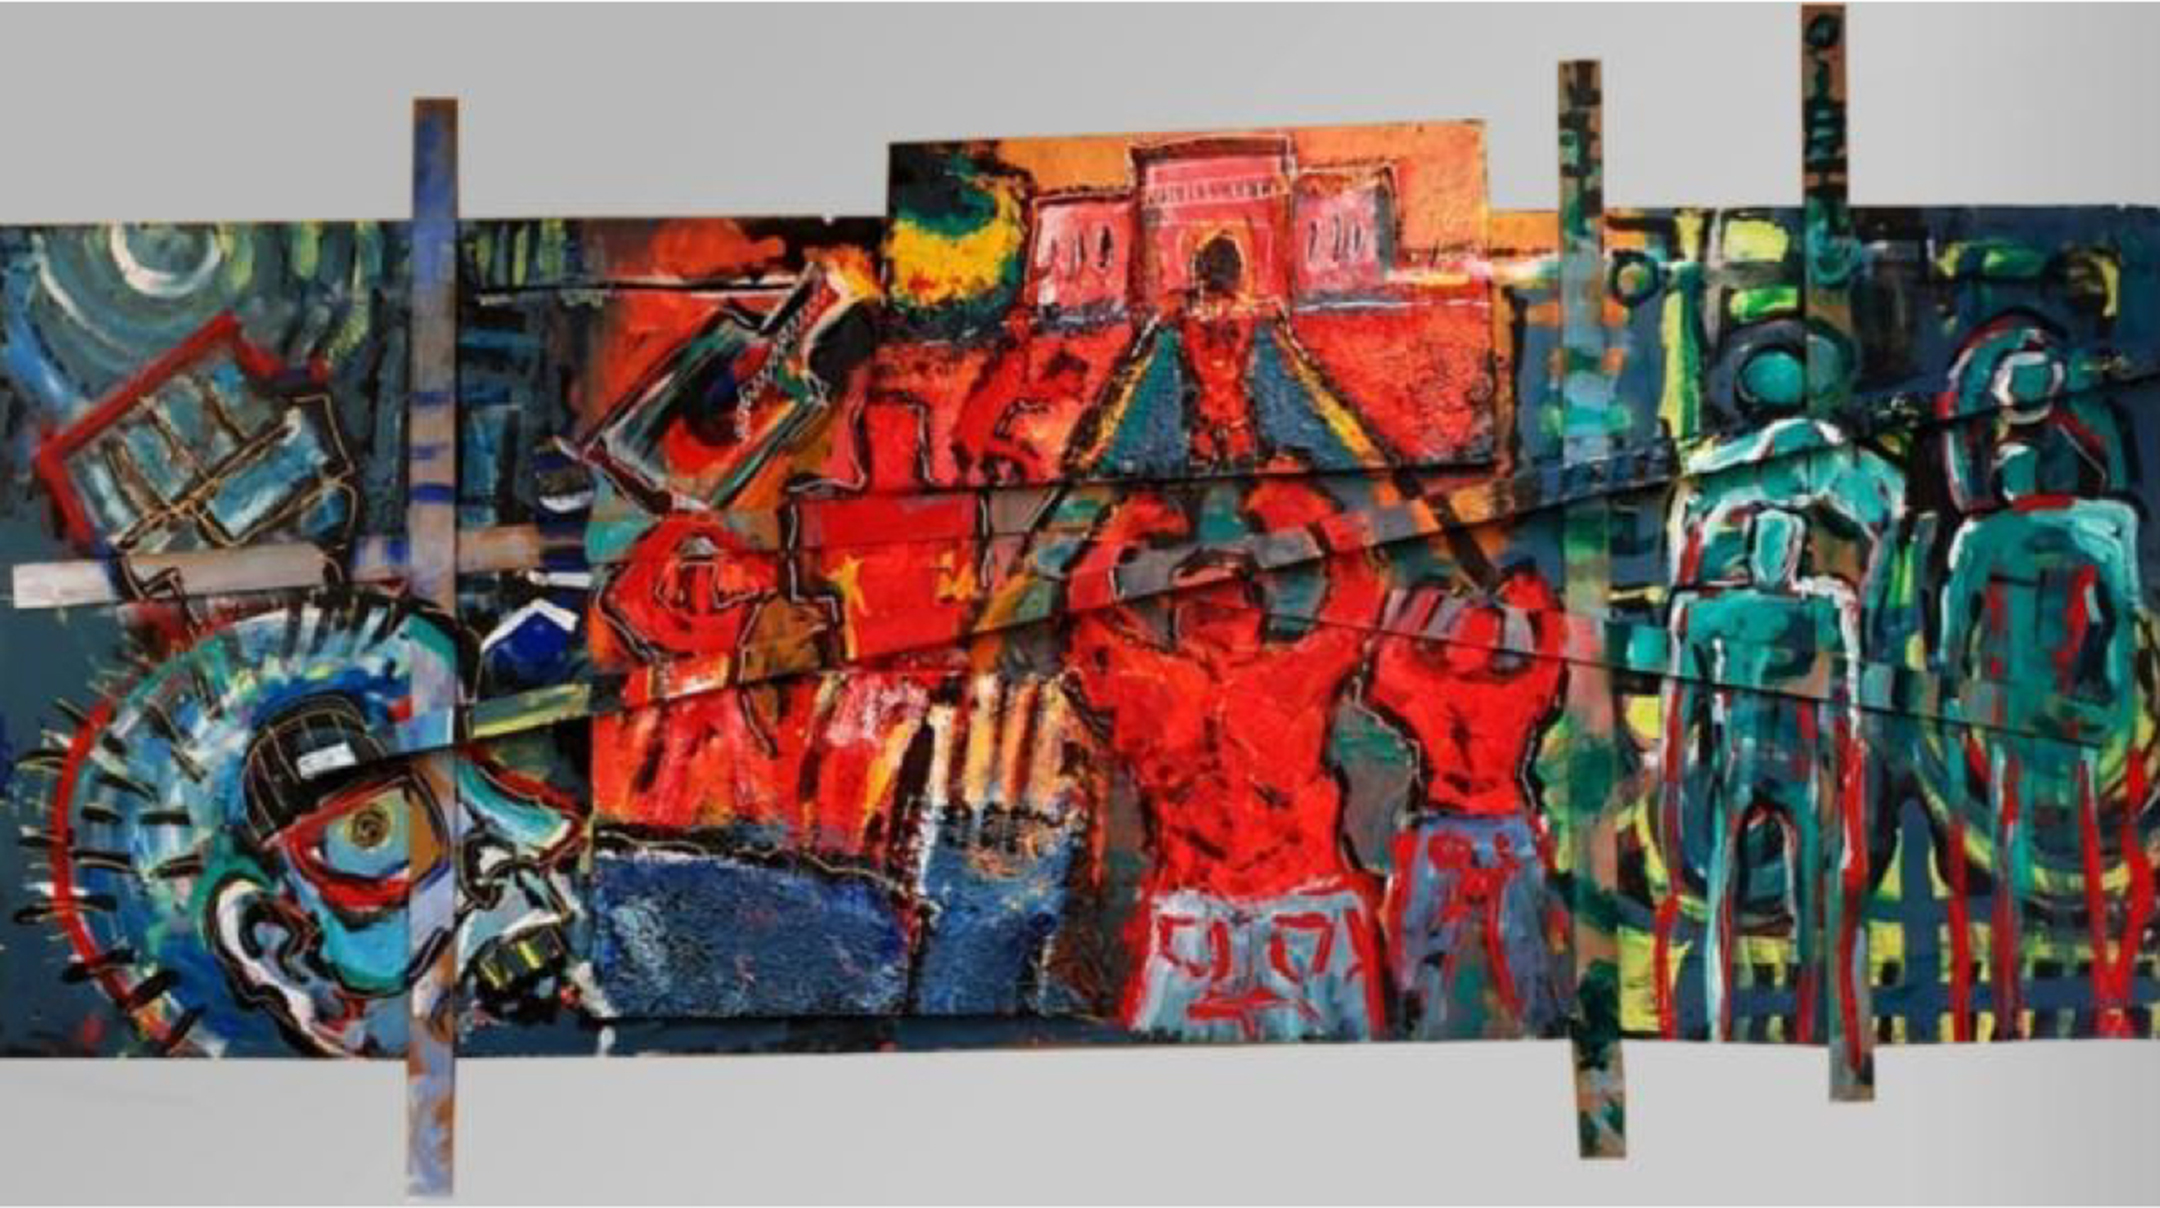 Large paneled art work, in red, green, and blue depicting abstract scenes of protest and city experience